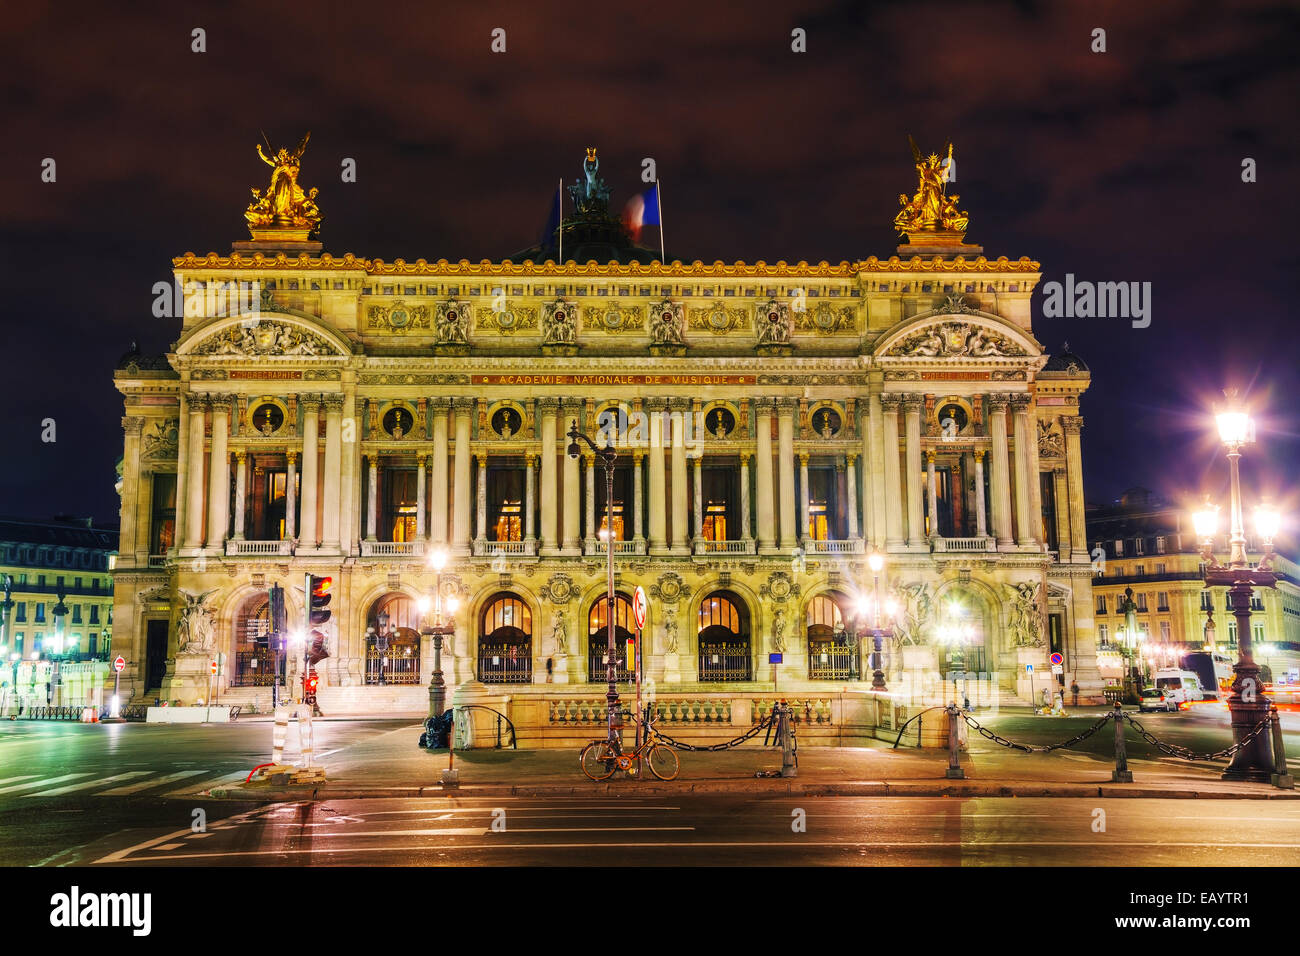 The Palais Garnier (National Opera House) in Paris, France in the night - Stock Image